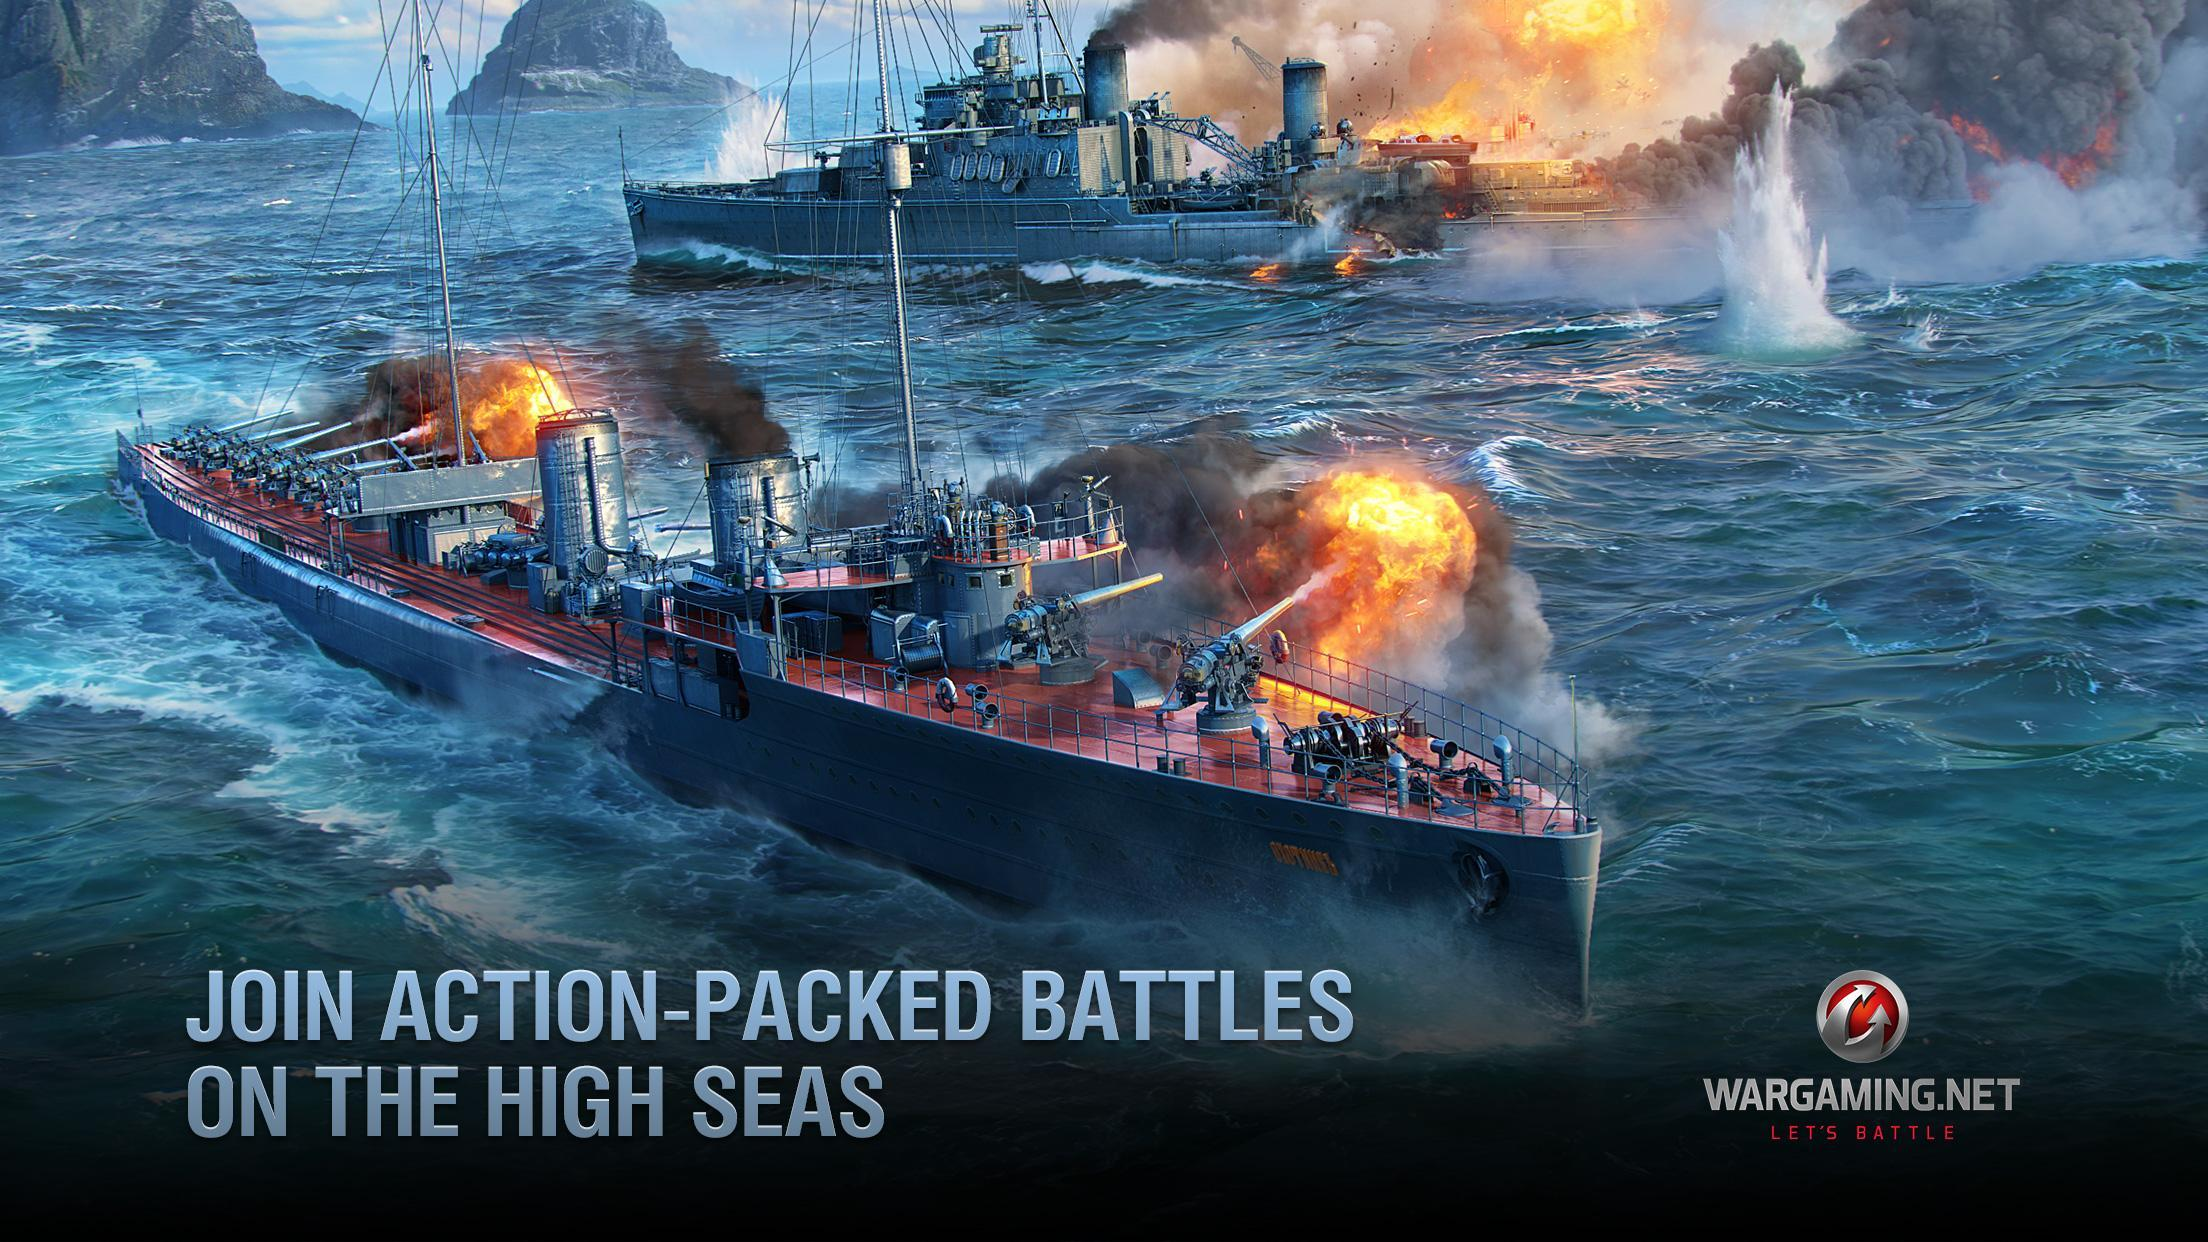 World of Warships Blitz: Gunship Action War Game 3.3.0 Screenshot 2